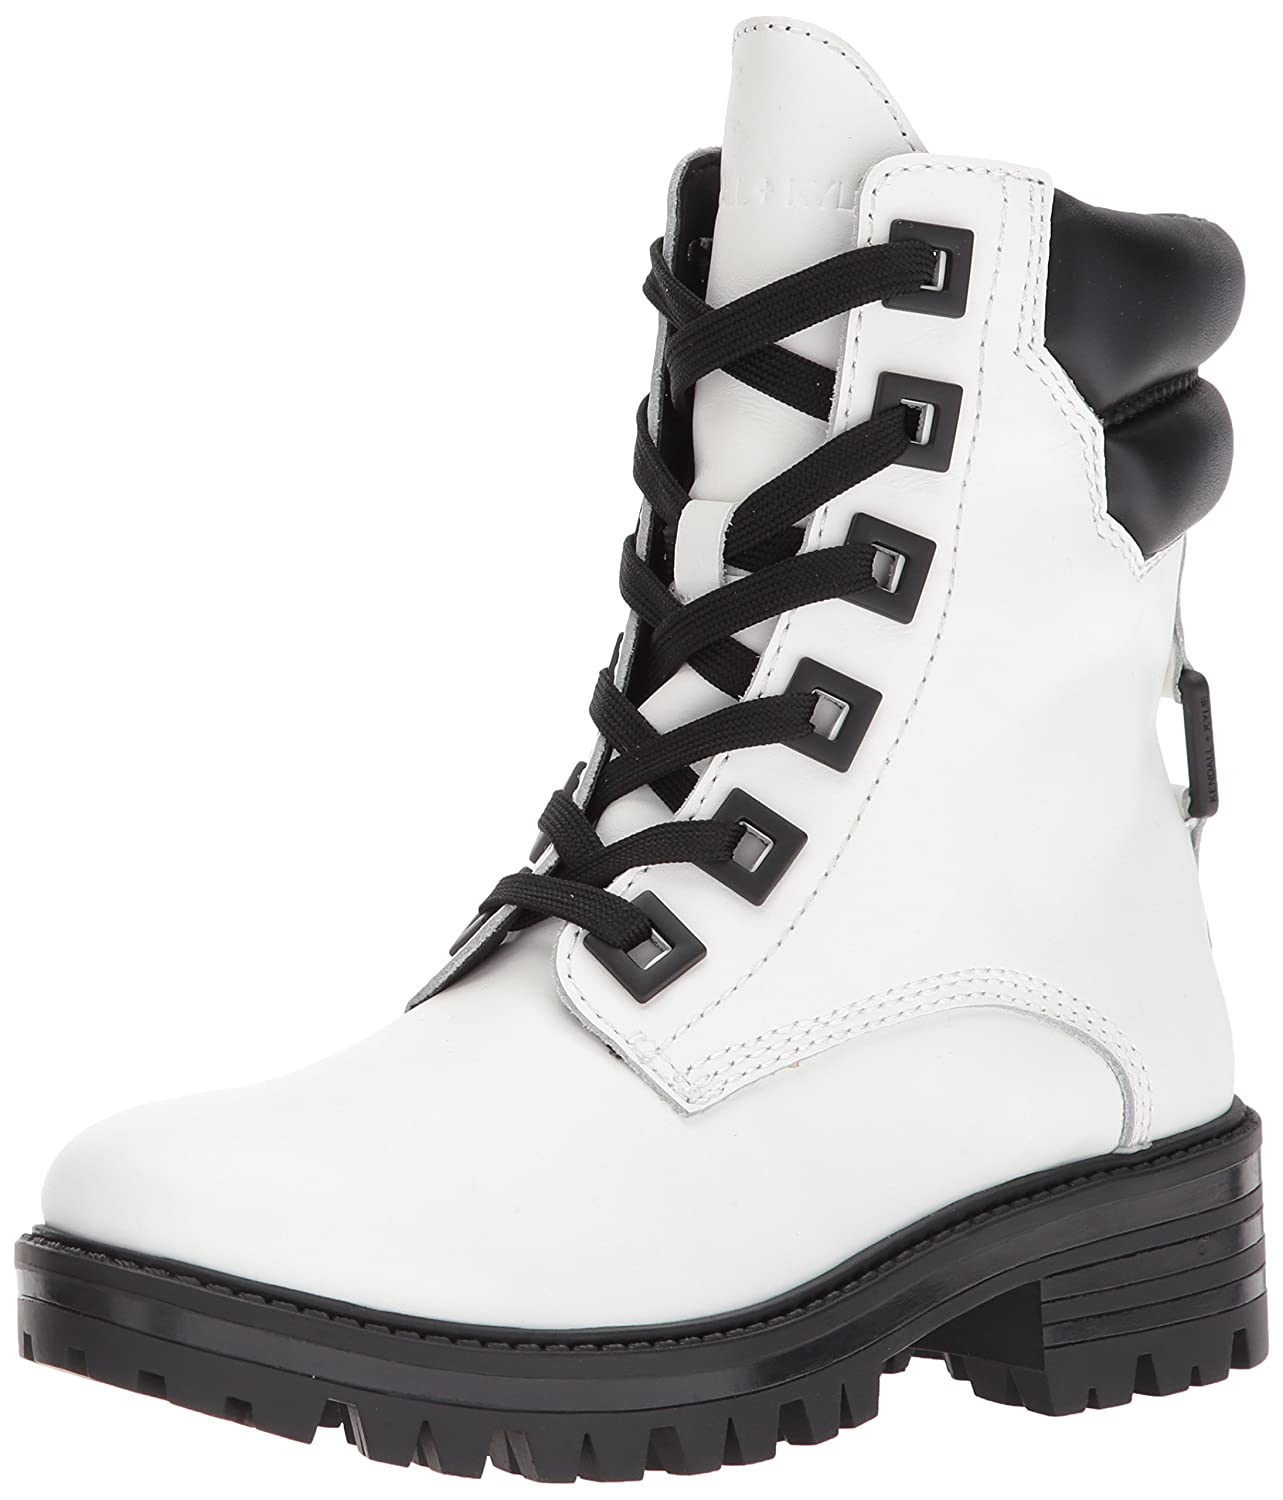 KENDALL + Boot KYLIE Women's East Combat Boot + B071RNPNW1 6.5 M US|White 15a557